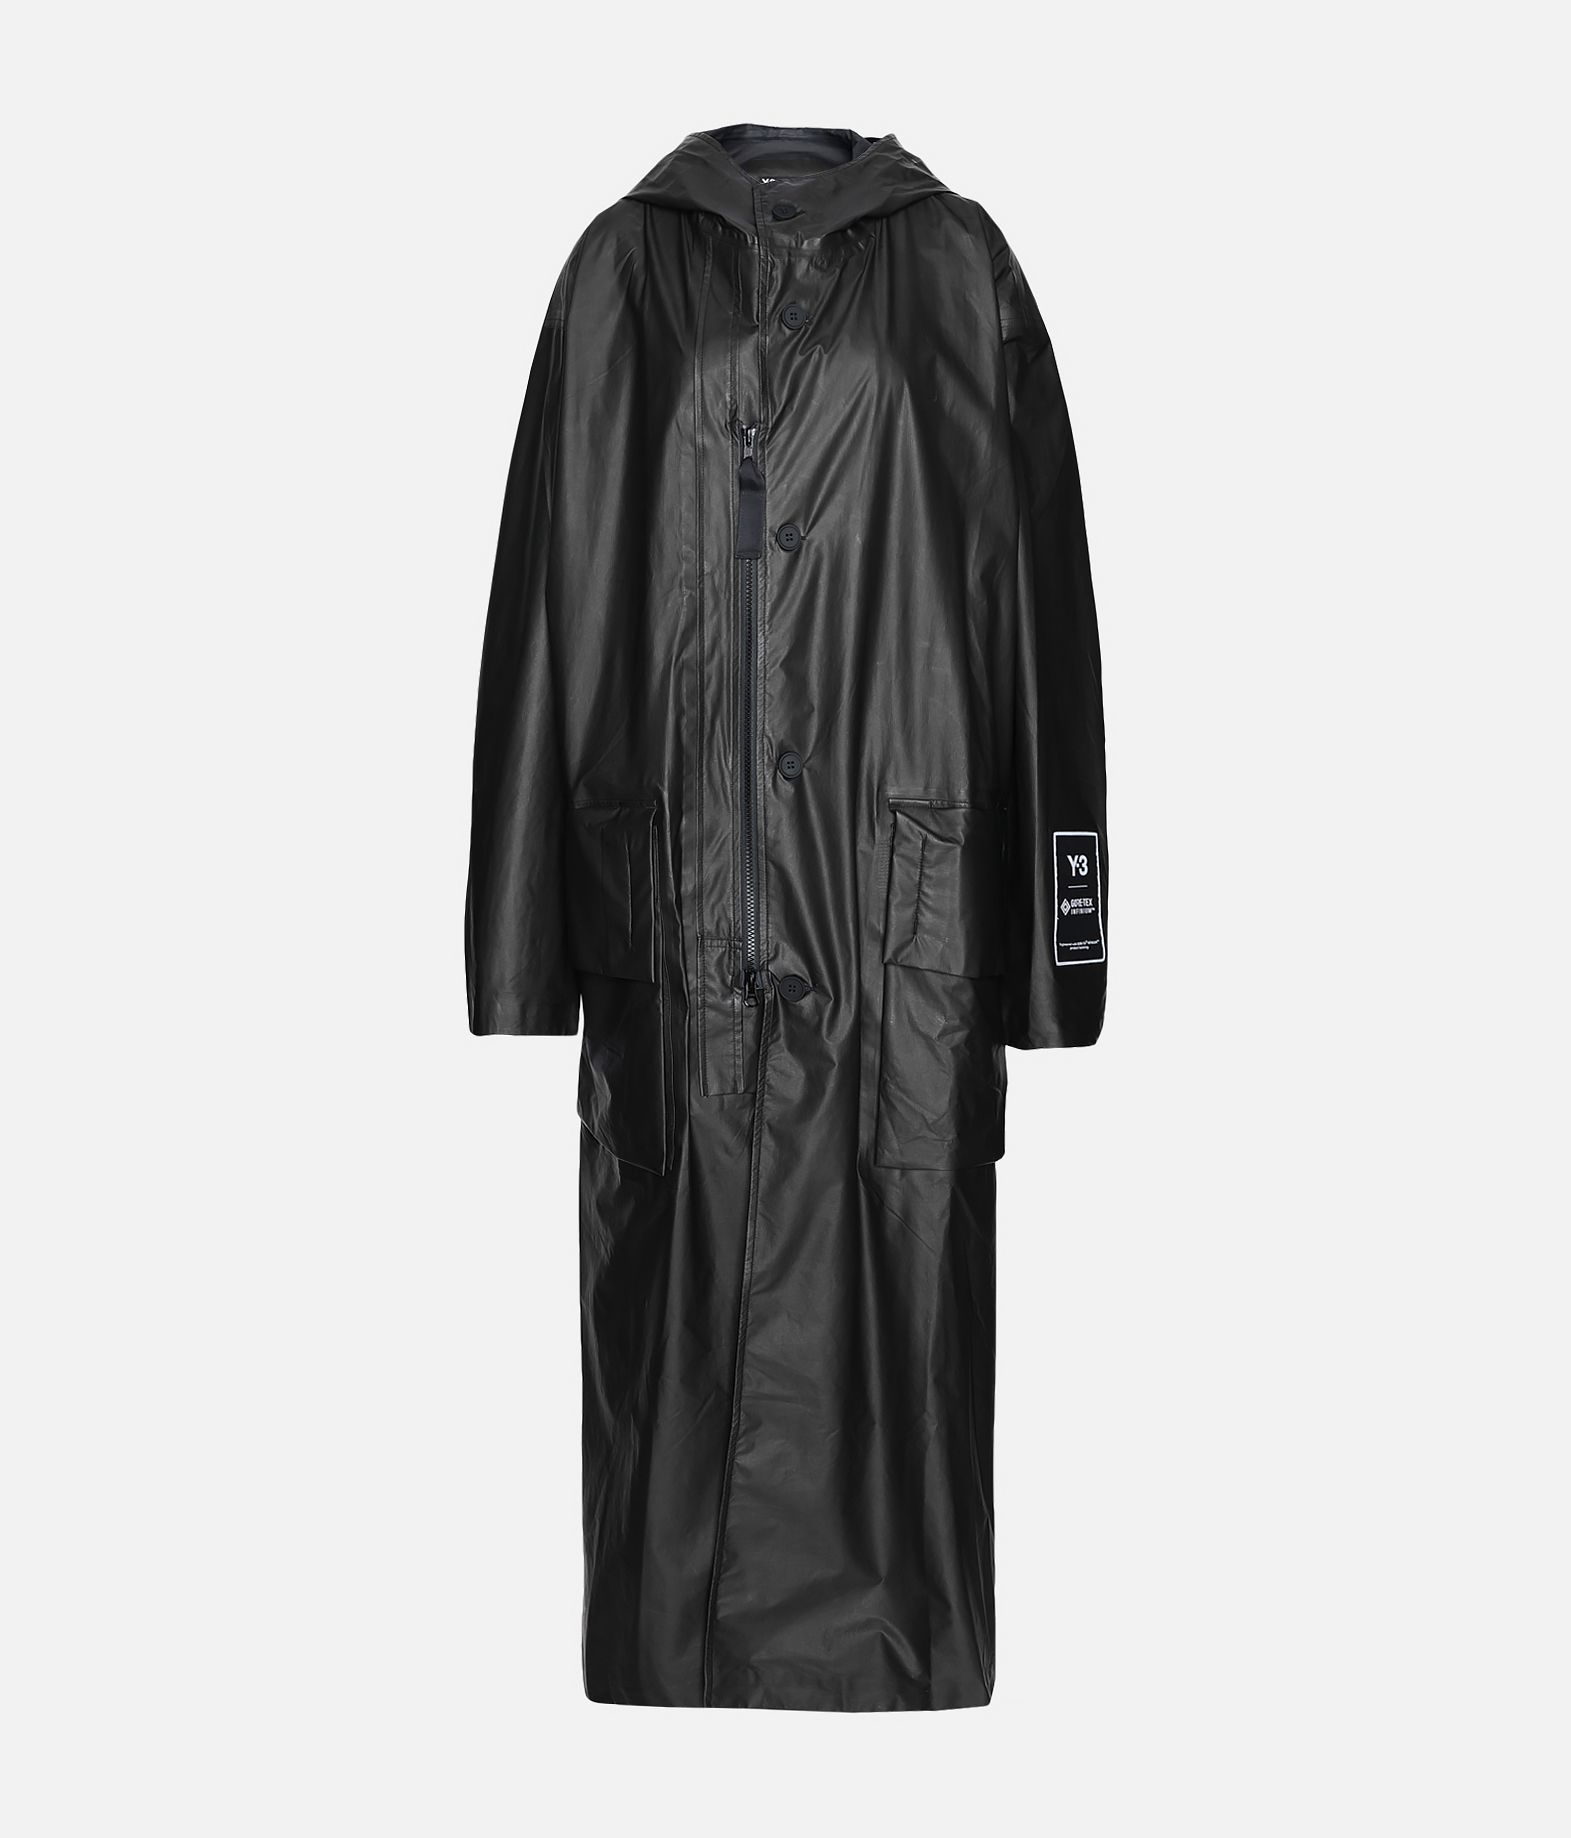 Y-3 Y-3 GORE-TEX Long Coat Full-length jacket Woman f